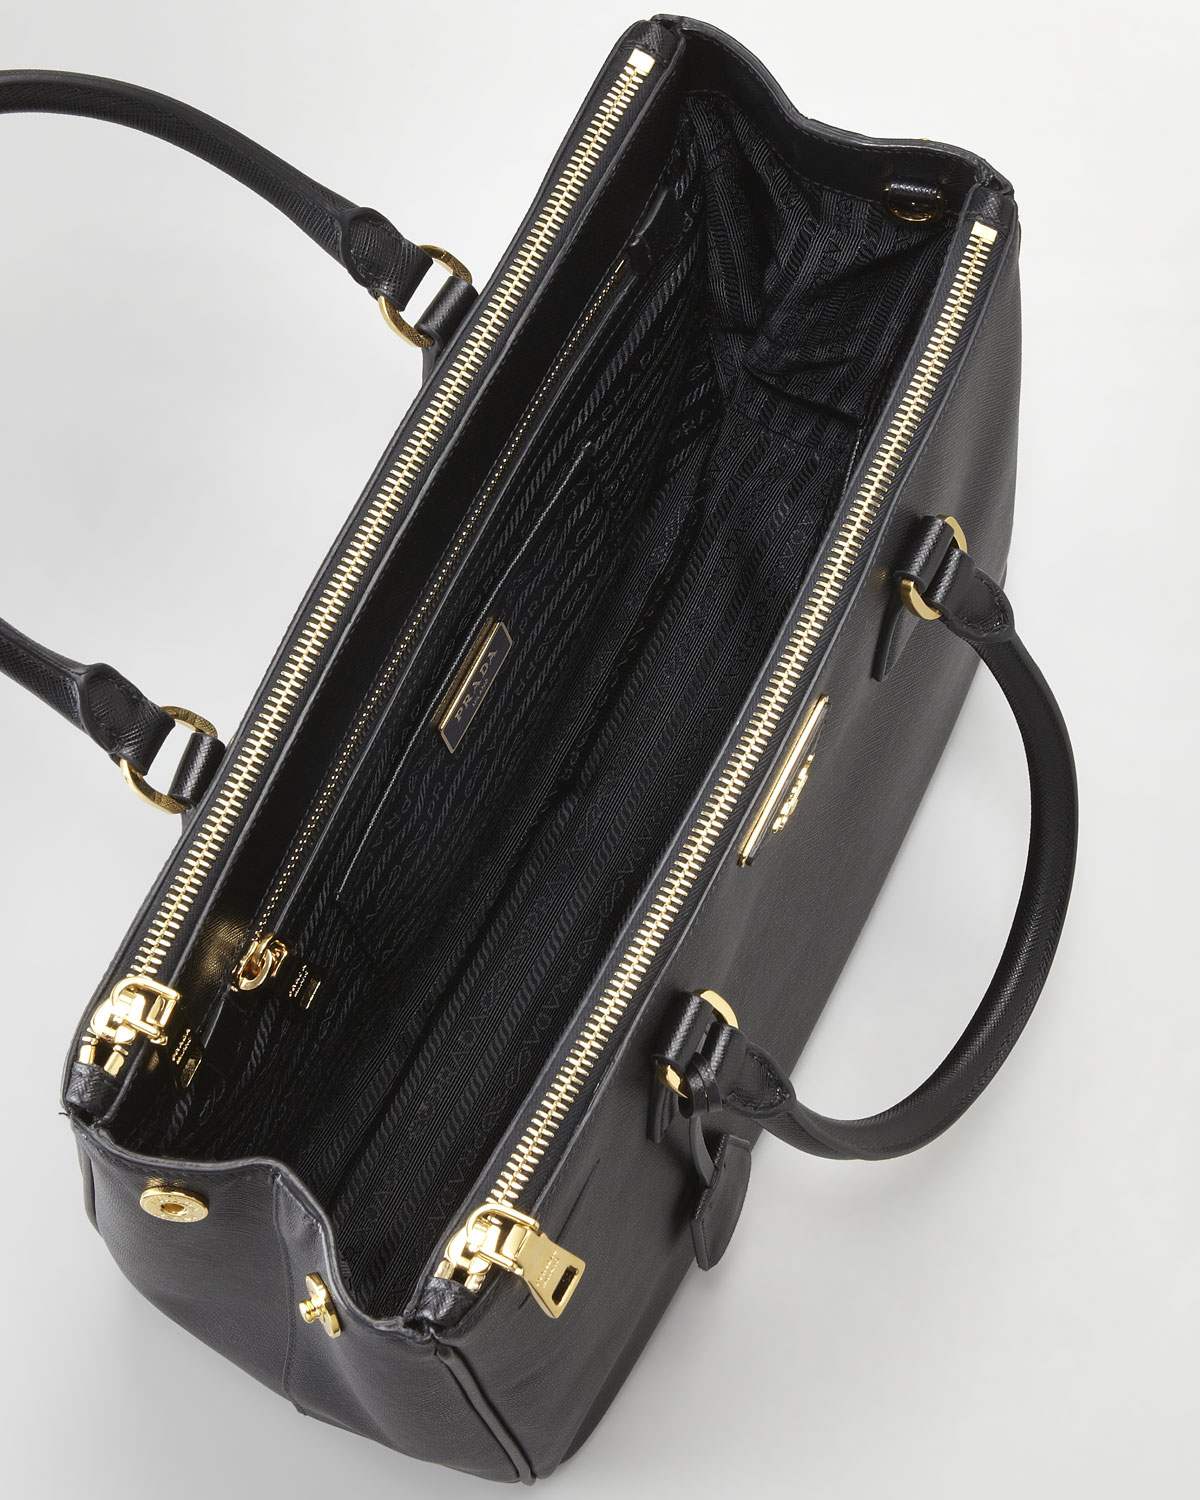 c744bc23a2d0 ... coupon code for lyst prada saffiano small executive tote in black 47d8b  58d2d